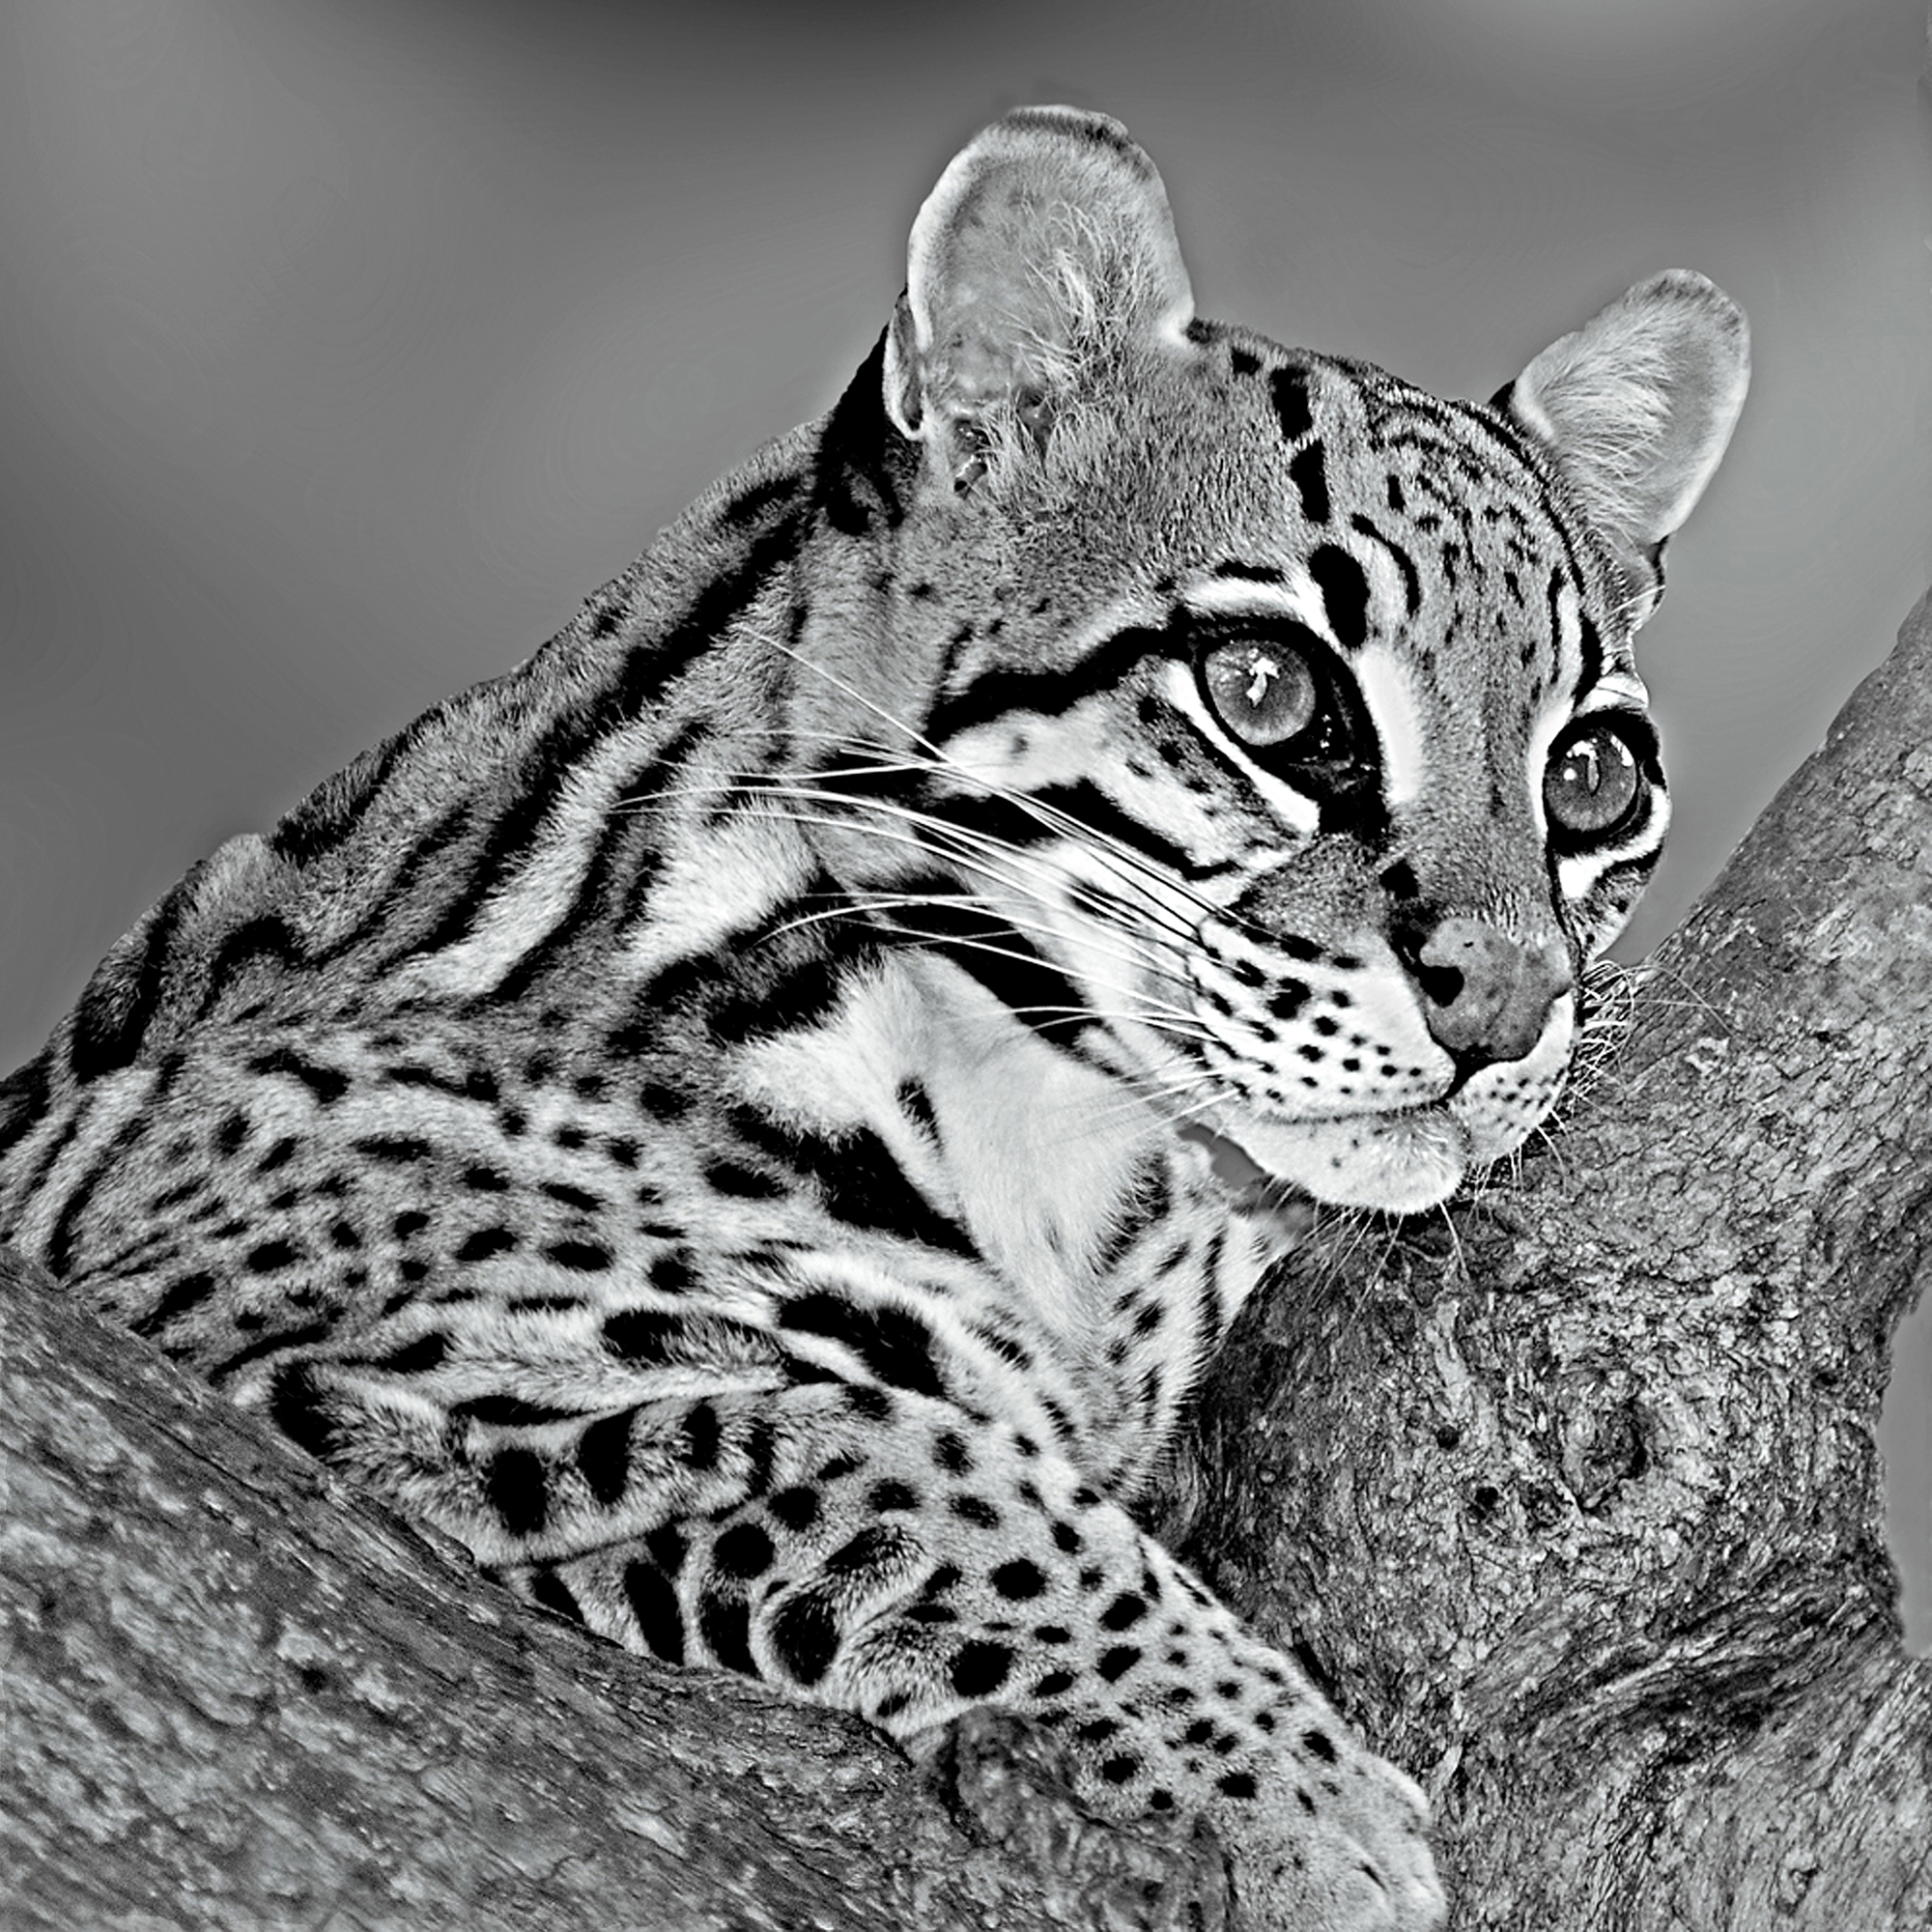 Ocelot in a Tree BW